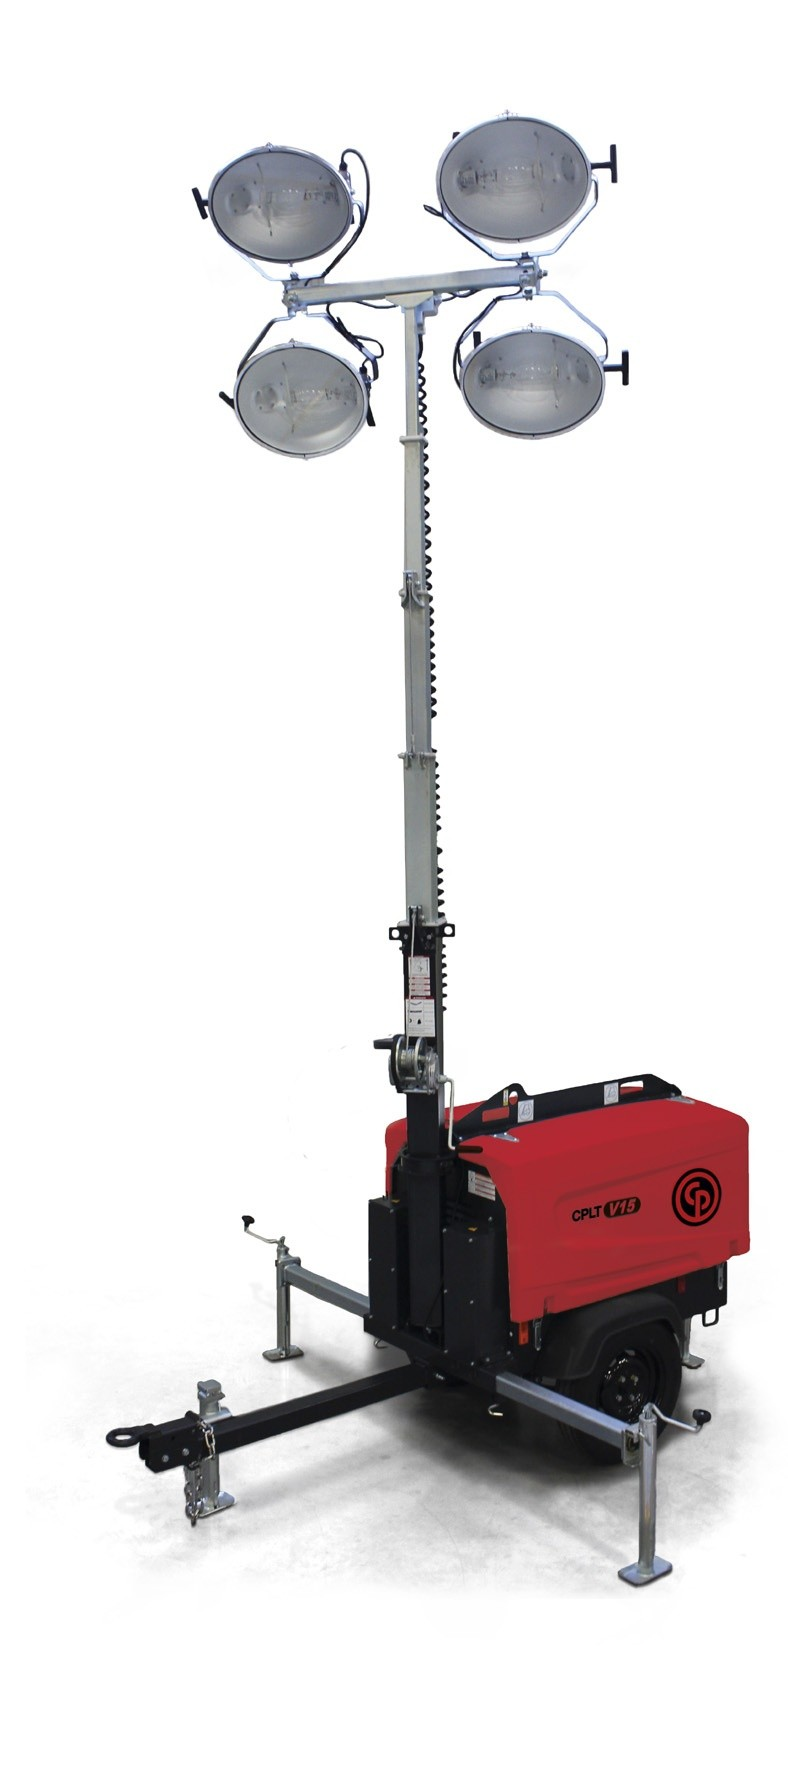 Chicago Pneumatic's new light towers